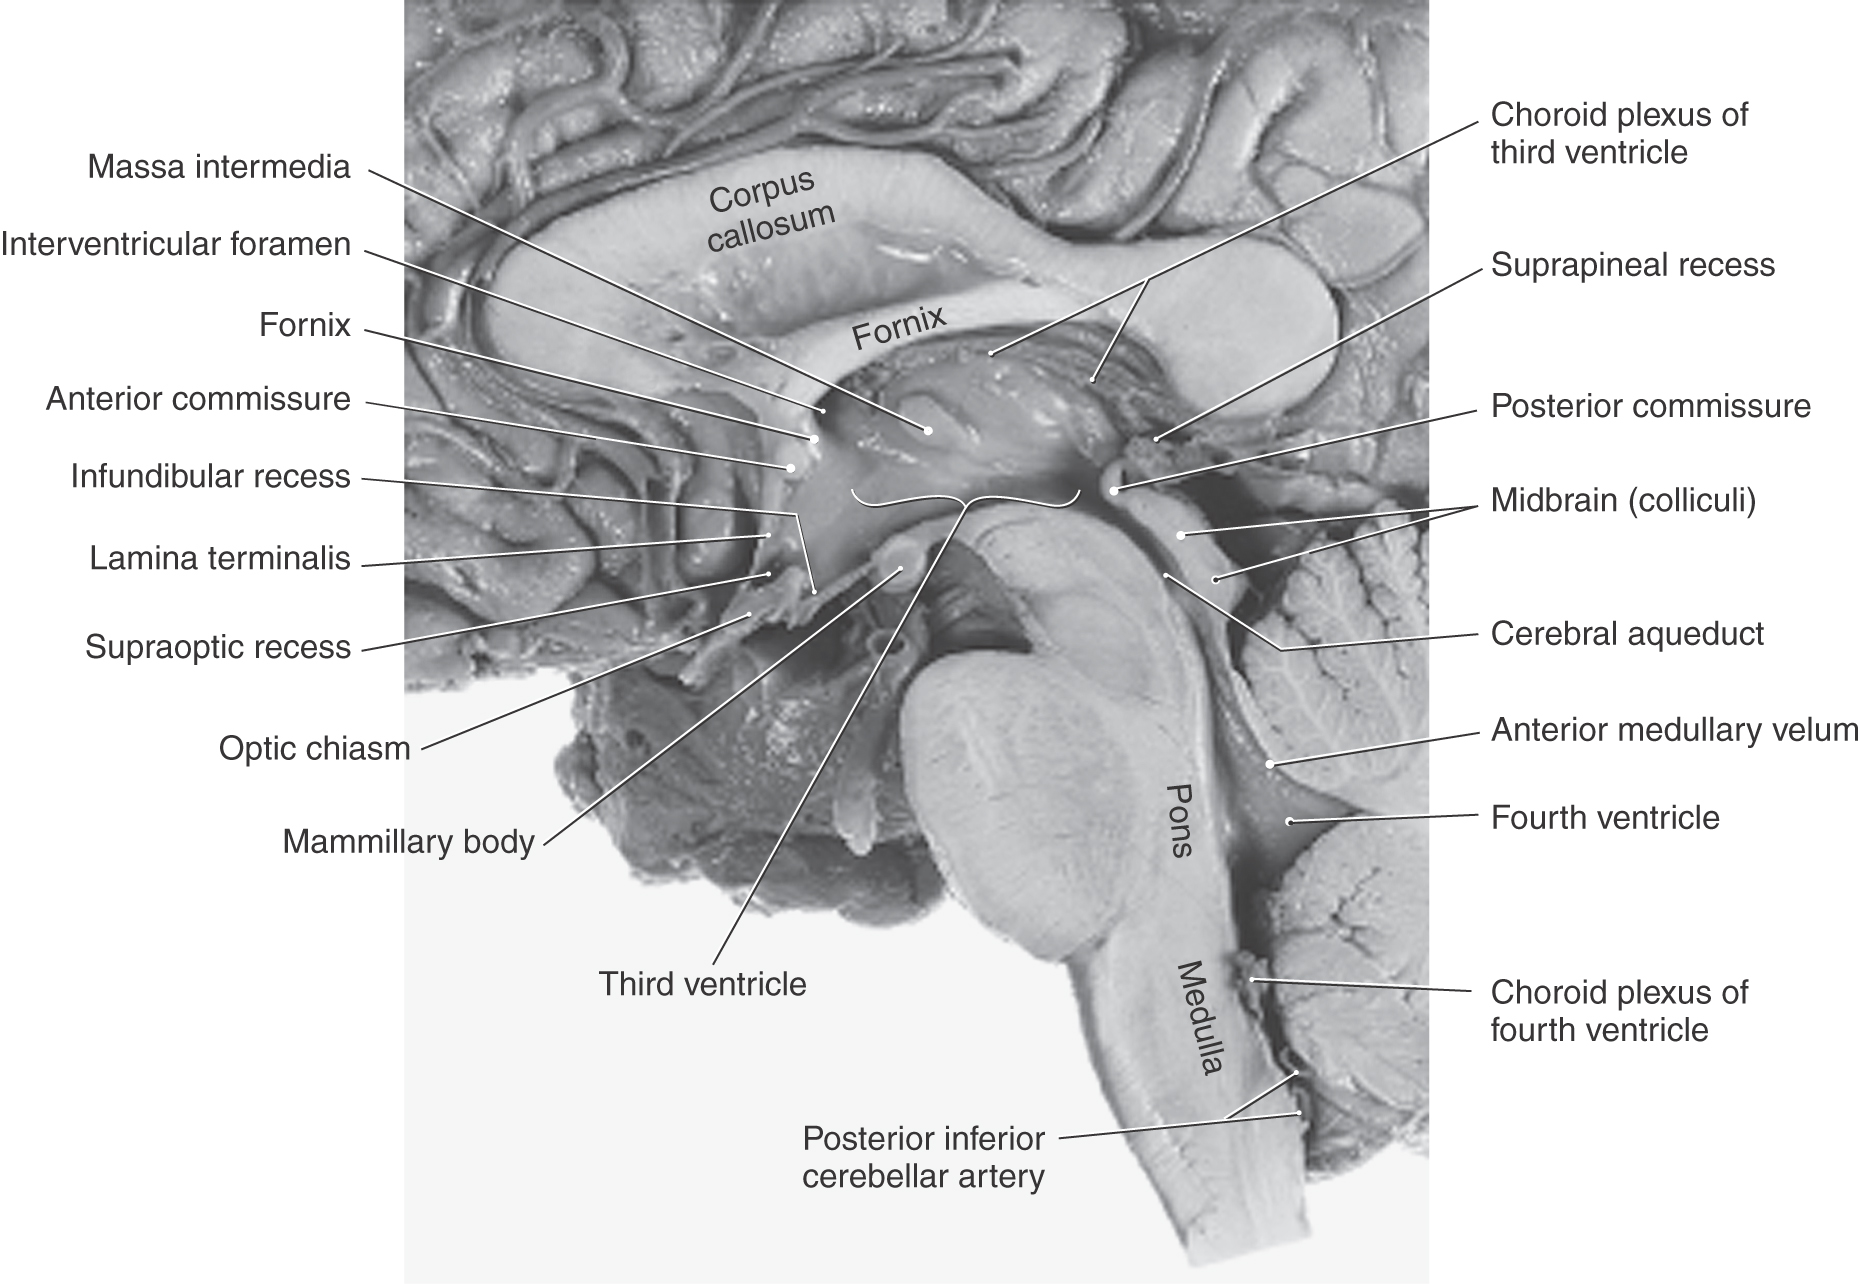 The Ventricles Choroid Plexus And Cerebrospinal Fluid Clinical Gate